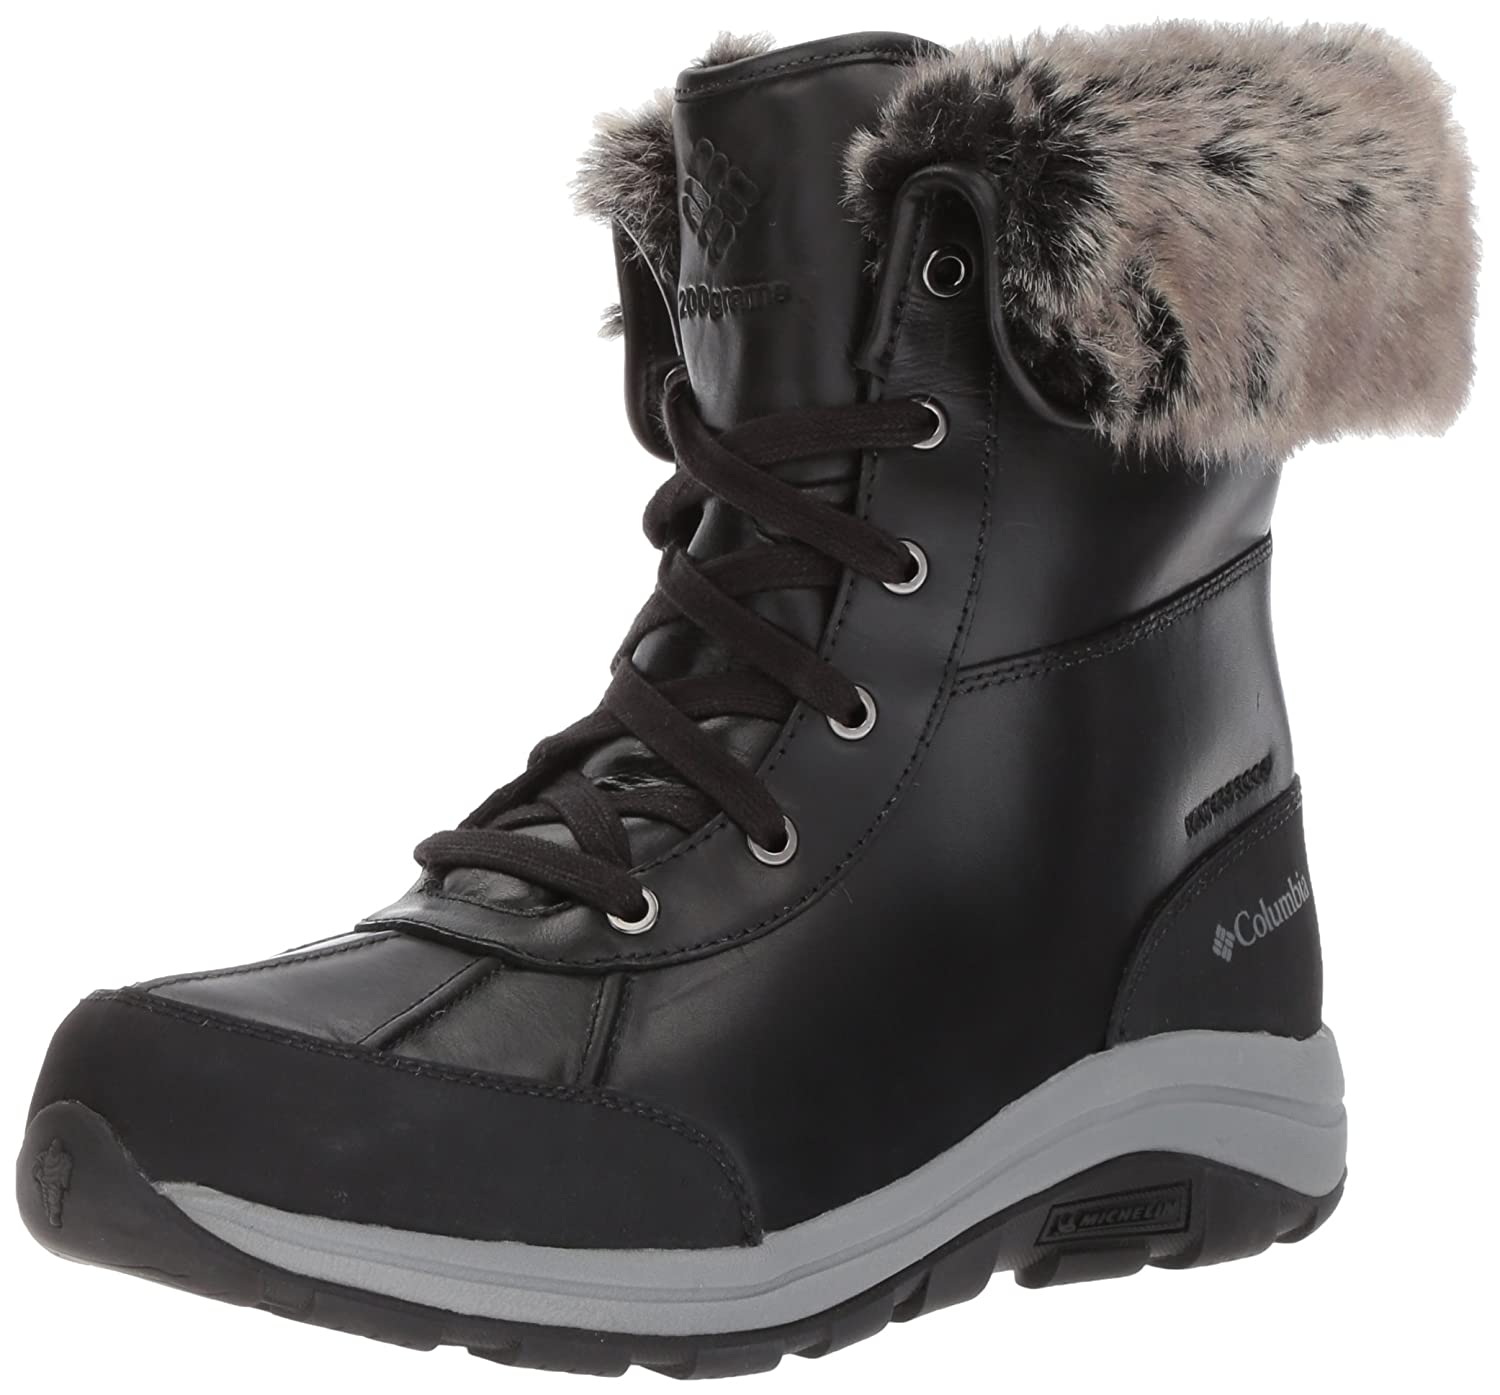 Columbia Women's Bangor Omni-Heat Ankle Boot B01N9JH4AX 7.5 B(M) US|Black, Monument